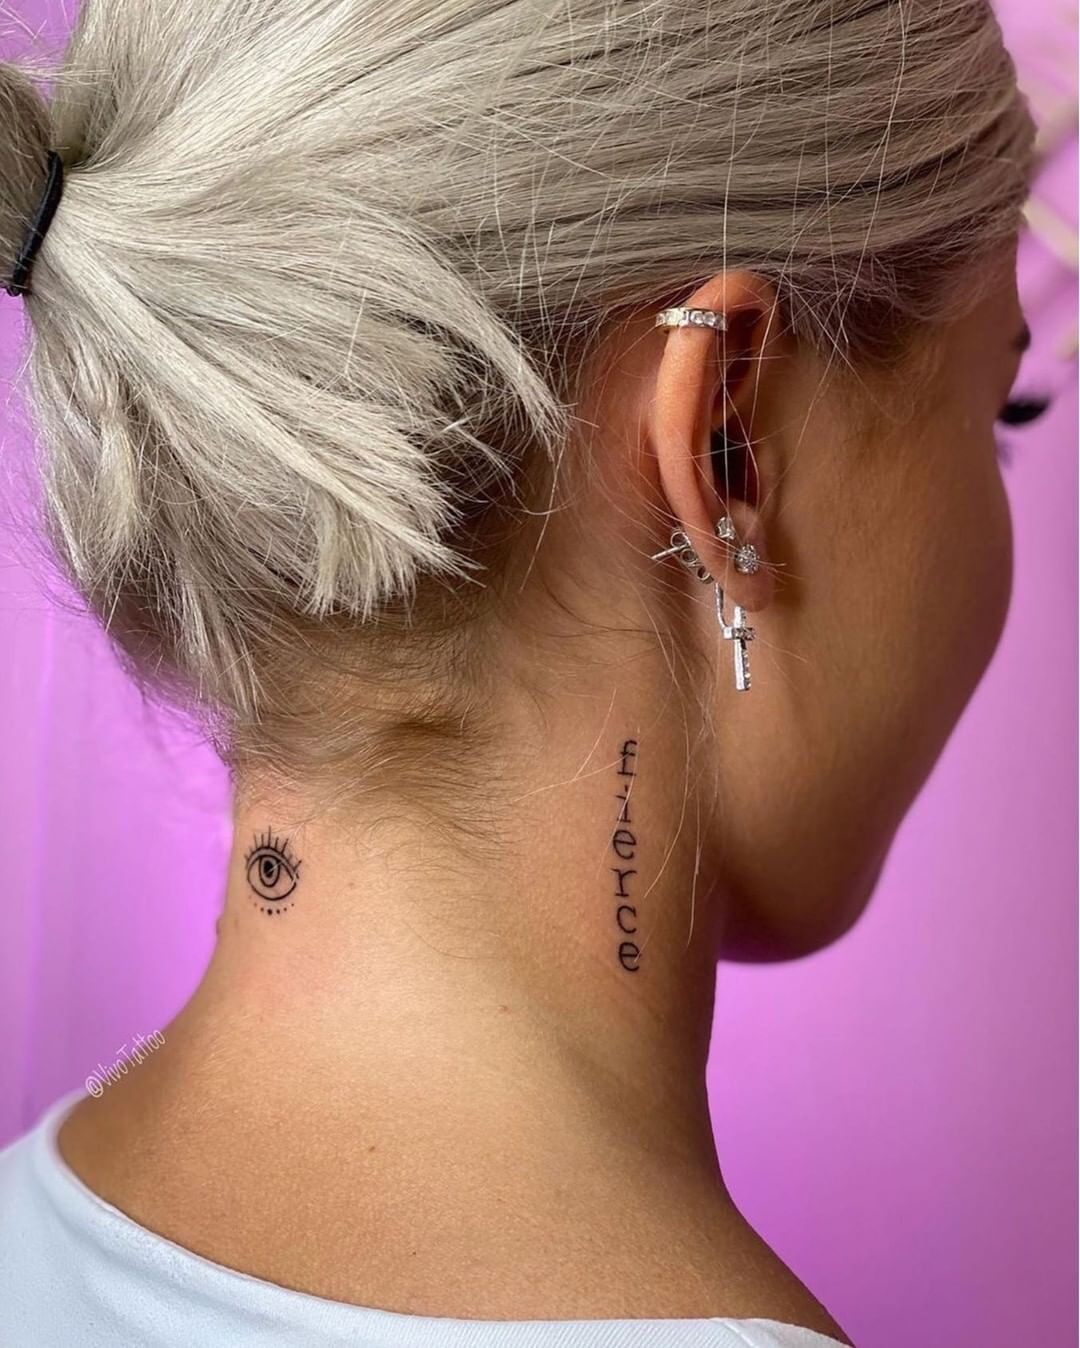 Small Tattoos For Girls On Instagram Self Confidence Is The Best Outfit Rock It And Own It In 2020 Neck Tattoos Women Behind The Neck Tattoos Girl Neck Tattoos